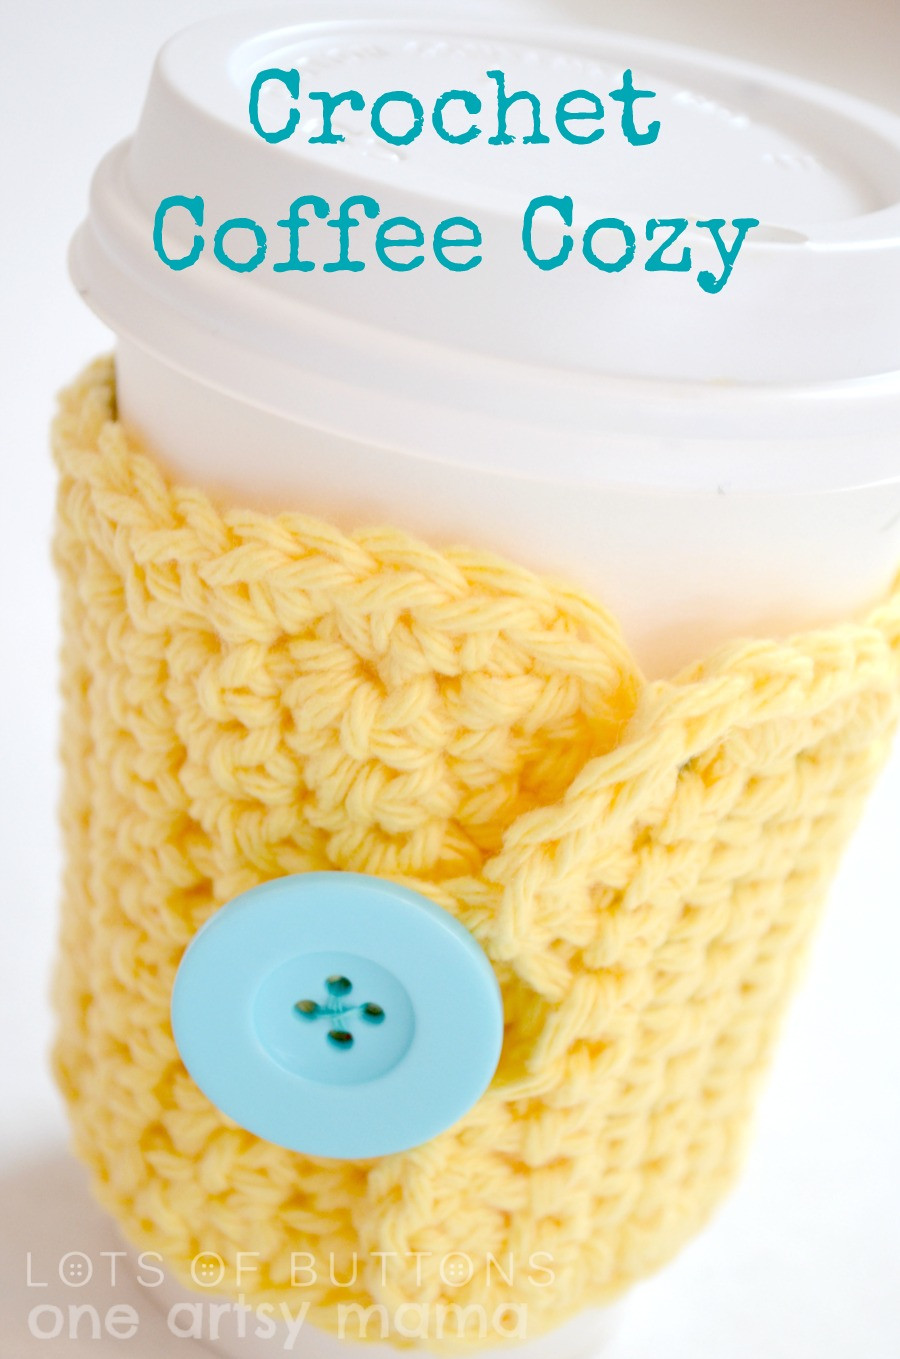 Crochet Coffee Cup Cozy Lovely Crochet Coffee Cozy Amy Latta Creations Of Crochet Coffee Cup Cozy Awesome Textured Coffee Mug Cozy Crochet Pattern